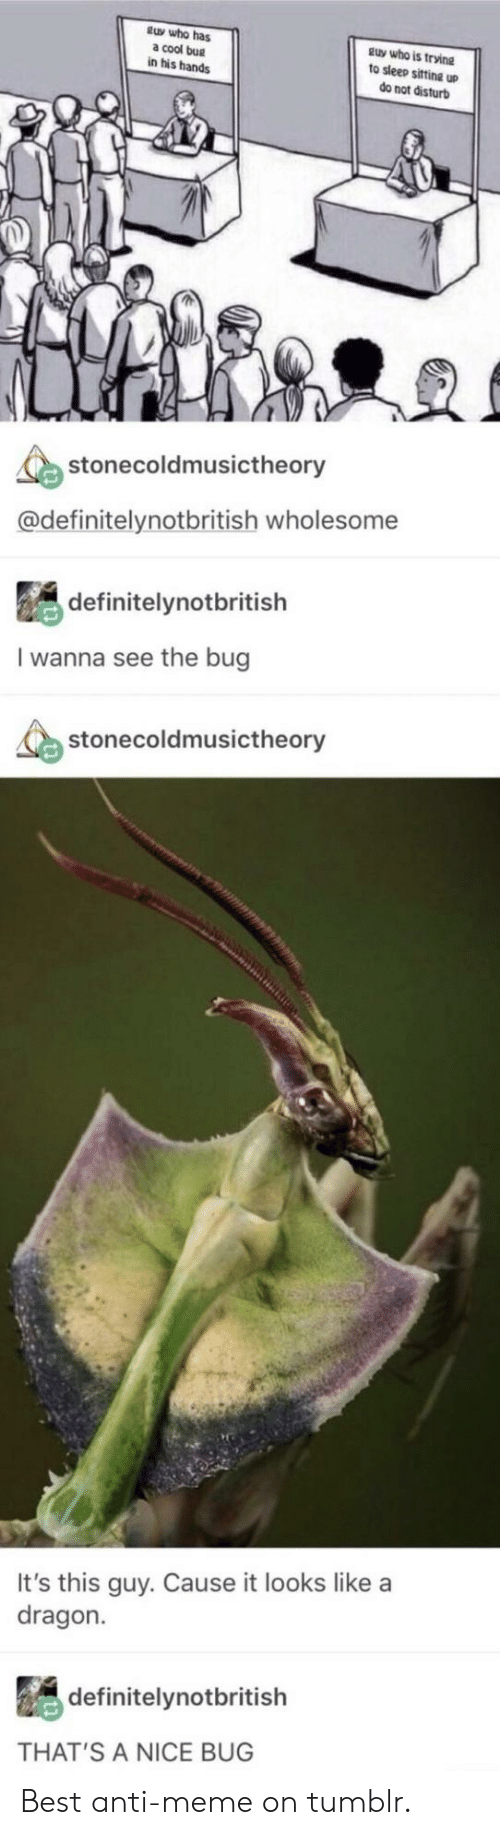 Meme, Tumblr, and Best: tuy who has  a cool bug  in his hands  guy who is trvine  to sleep sifting up  do not disturb  stonecoldmusictheory  @definitelynotbritish wholesome  definitelynotbritish  I wanna see the bug  stonecoldmusictheory  It's this guy. Cause it looks like a  dragon.  definitelynotbritish  THAT'S A NICE BUG Best anti-meme on tumblr.